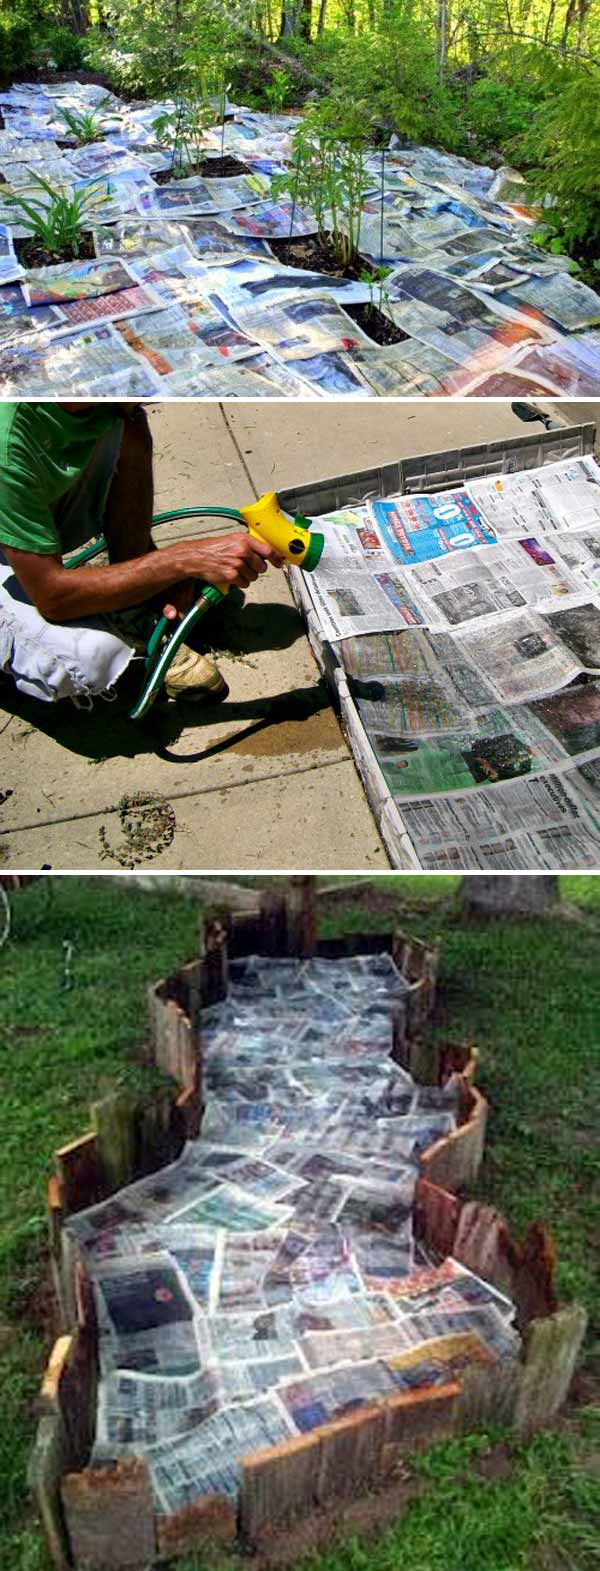 Use newspaper and water to stop weeds from growing in your garden bed | Clever Gardening Ideas on Low Budget